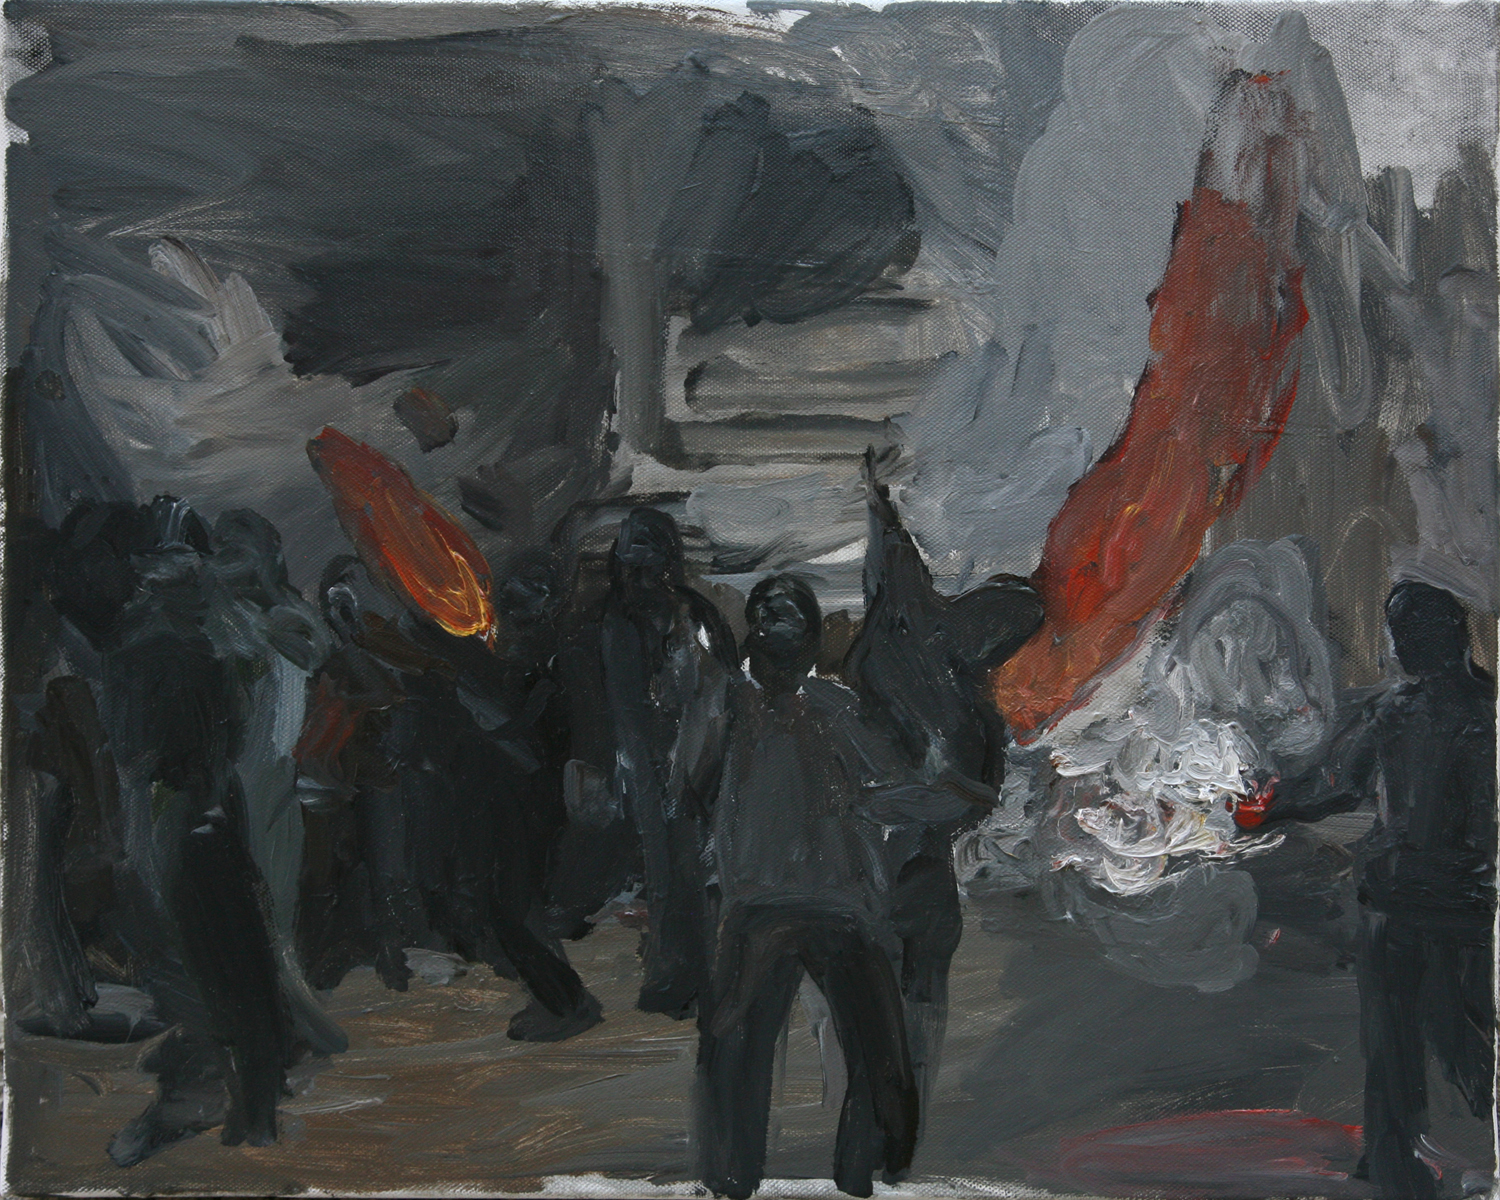 Mona Vatamanu & Florin Tudor   The Riot Series (#2) , 2009 oil on canvas 15.75 x 19.69 inches 40 x 50 cm